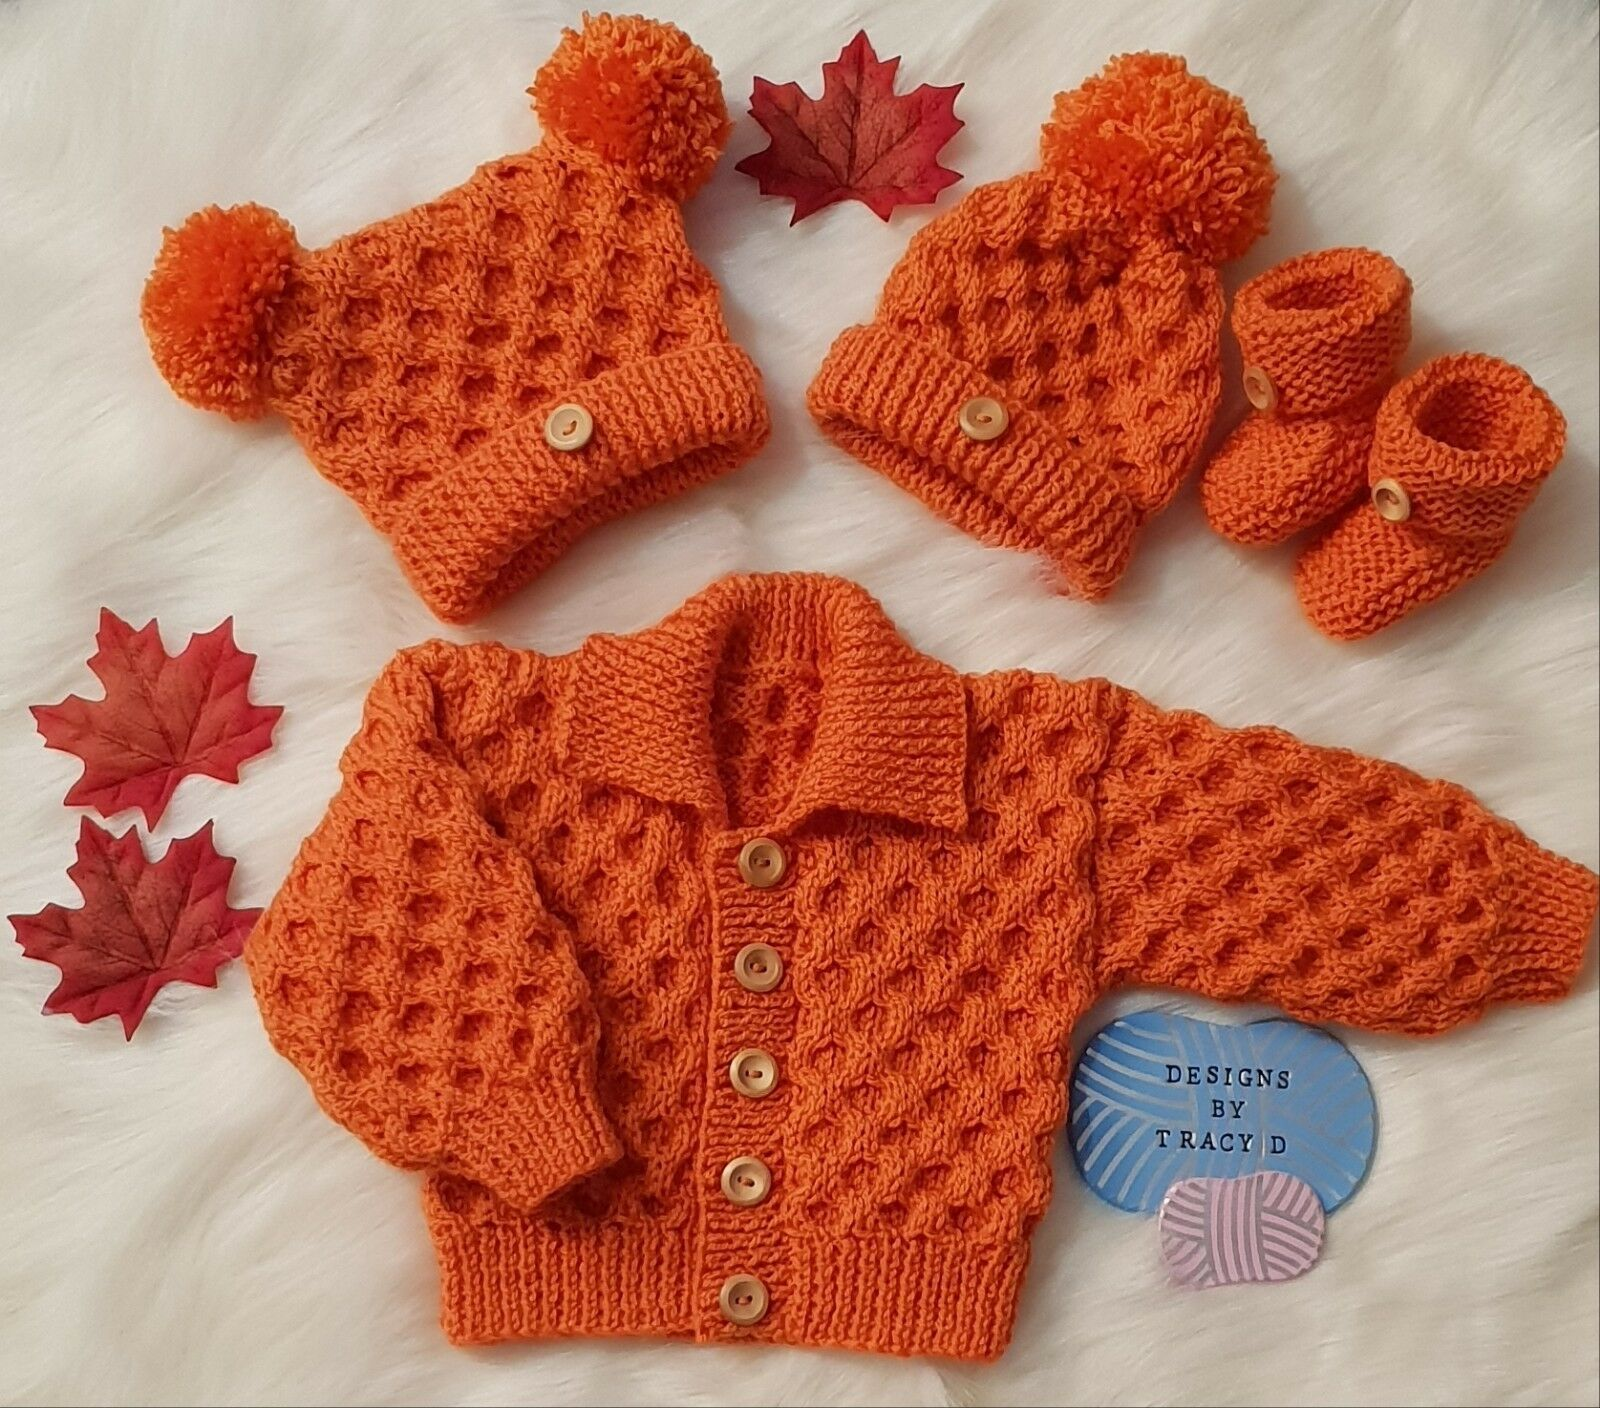 UNISEX DESIGNER KNITTING pattern 'Timothy' 0-3 & 6-12mths ...